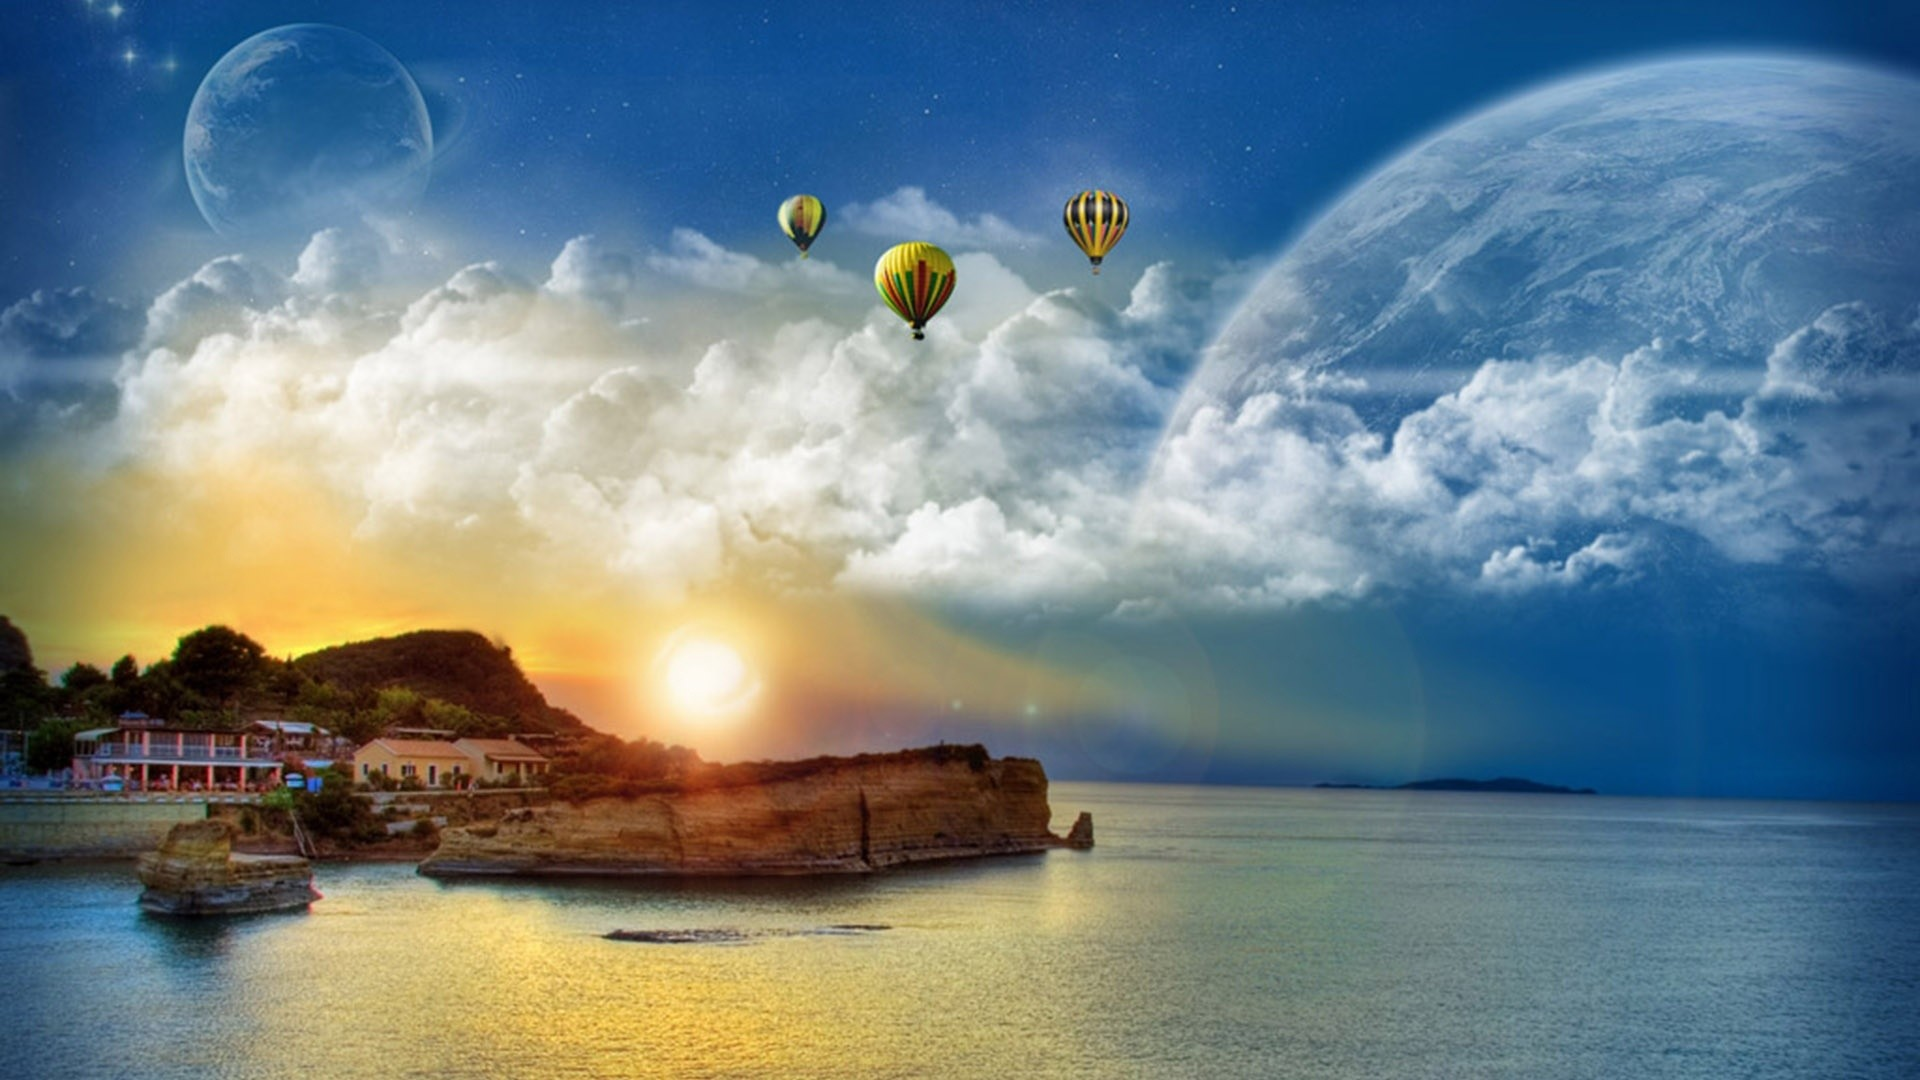 Res: 1920x1080, 3d art hd wallpapers free download